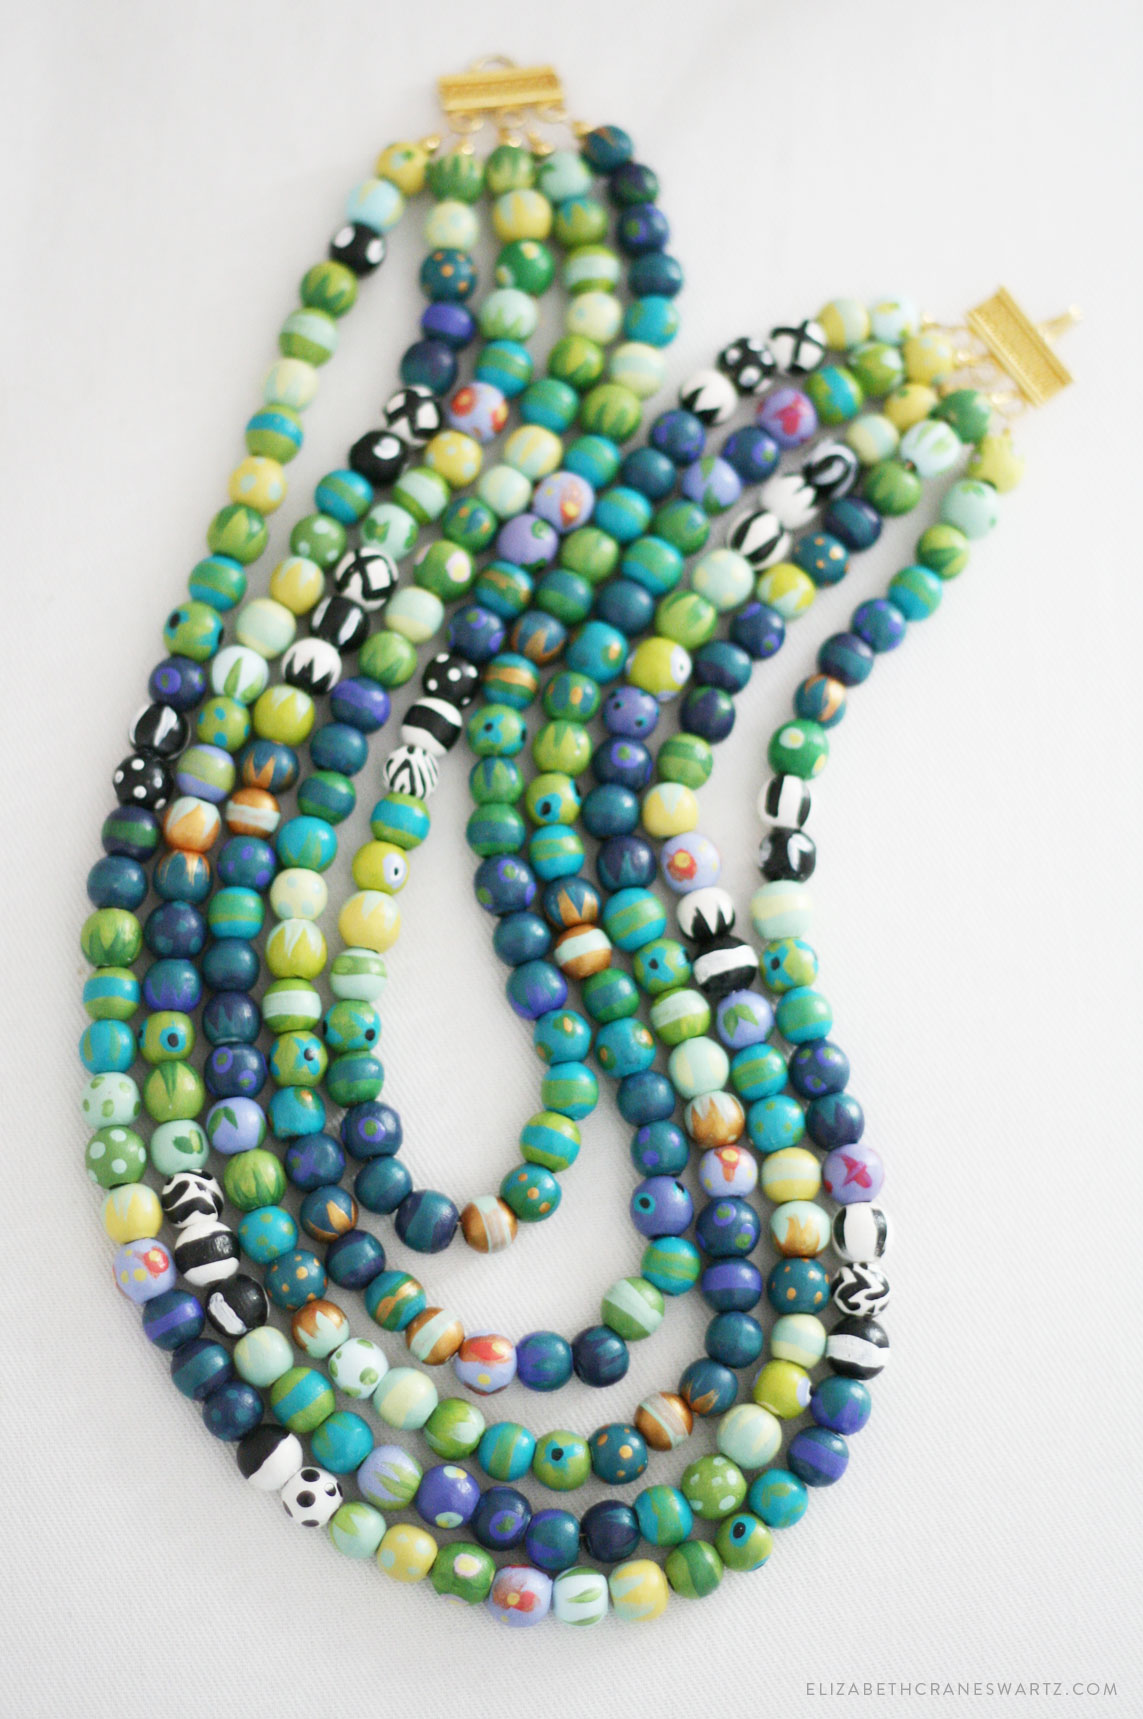 hand painted teal necklace / elizabethcraneswartz.com